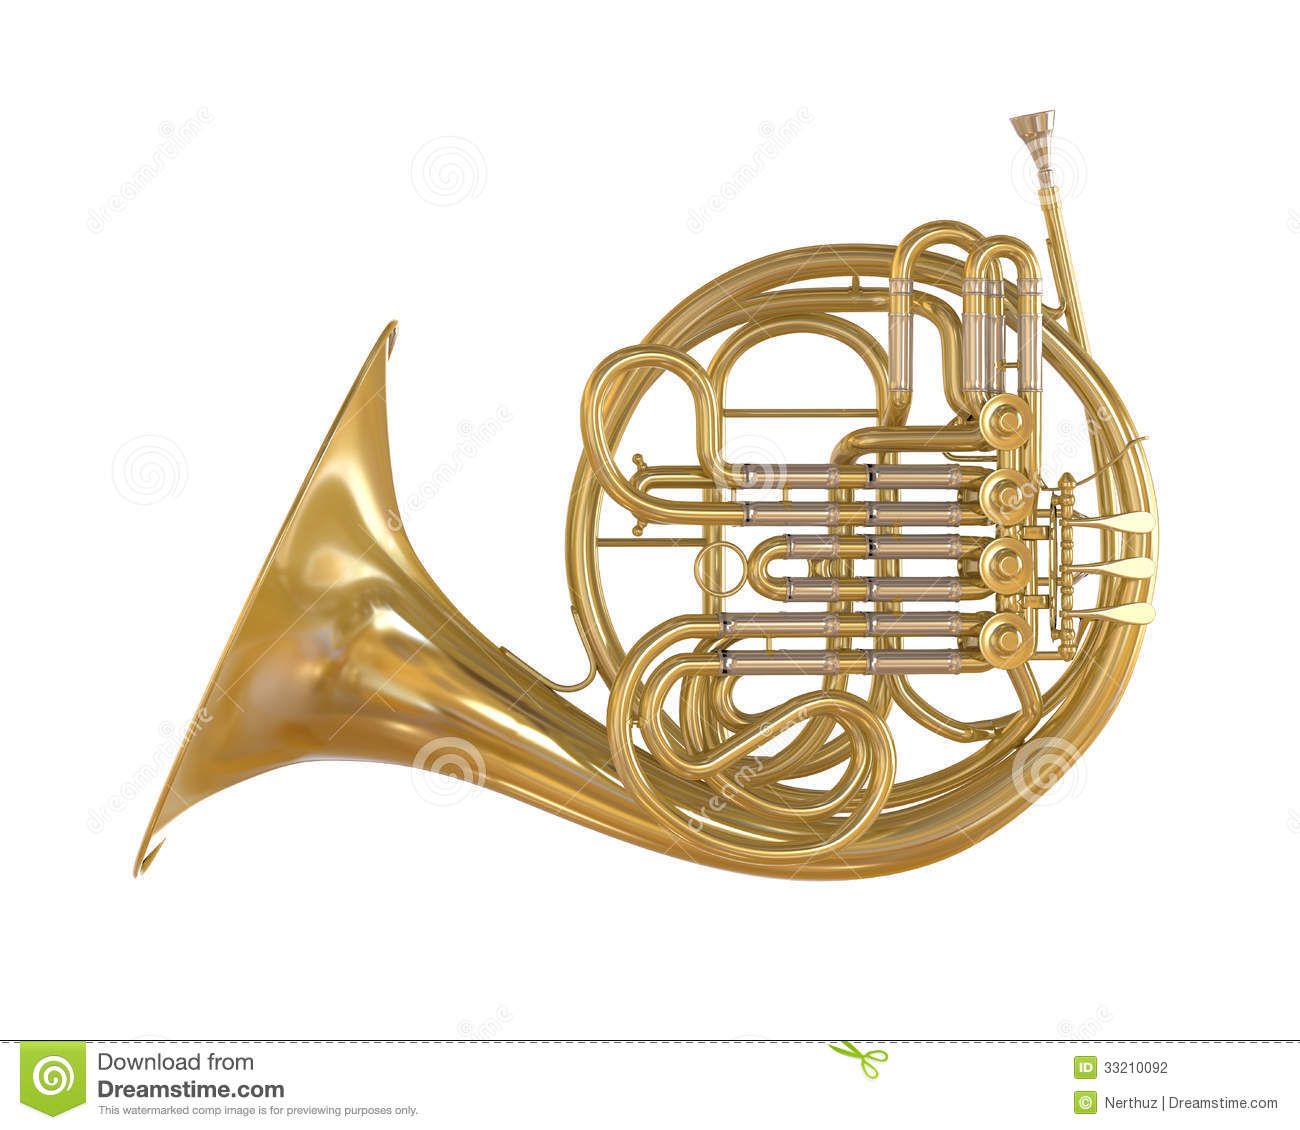 French Horn Isolated Stock Photography - Image: 33210092